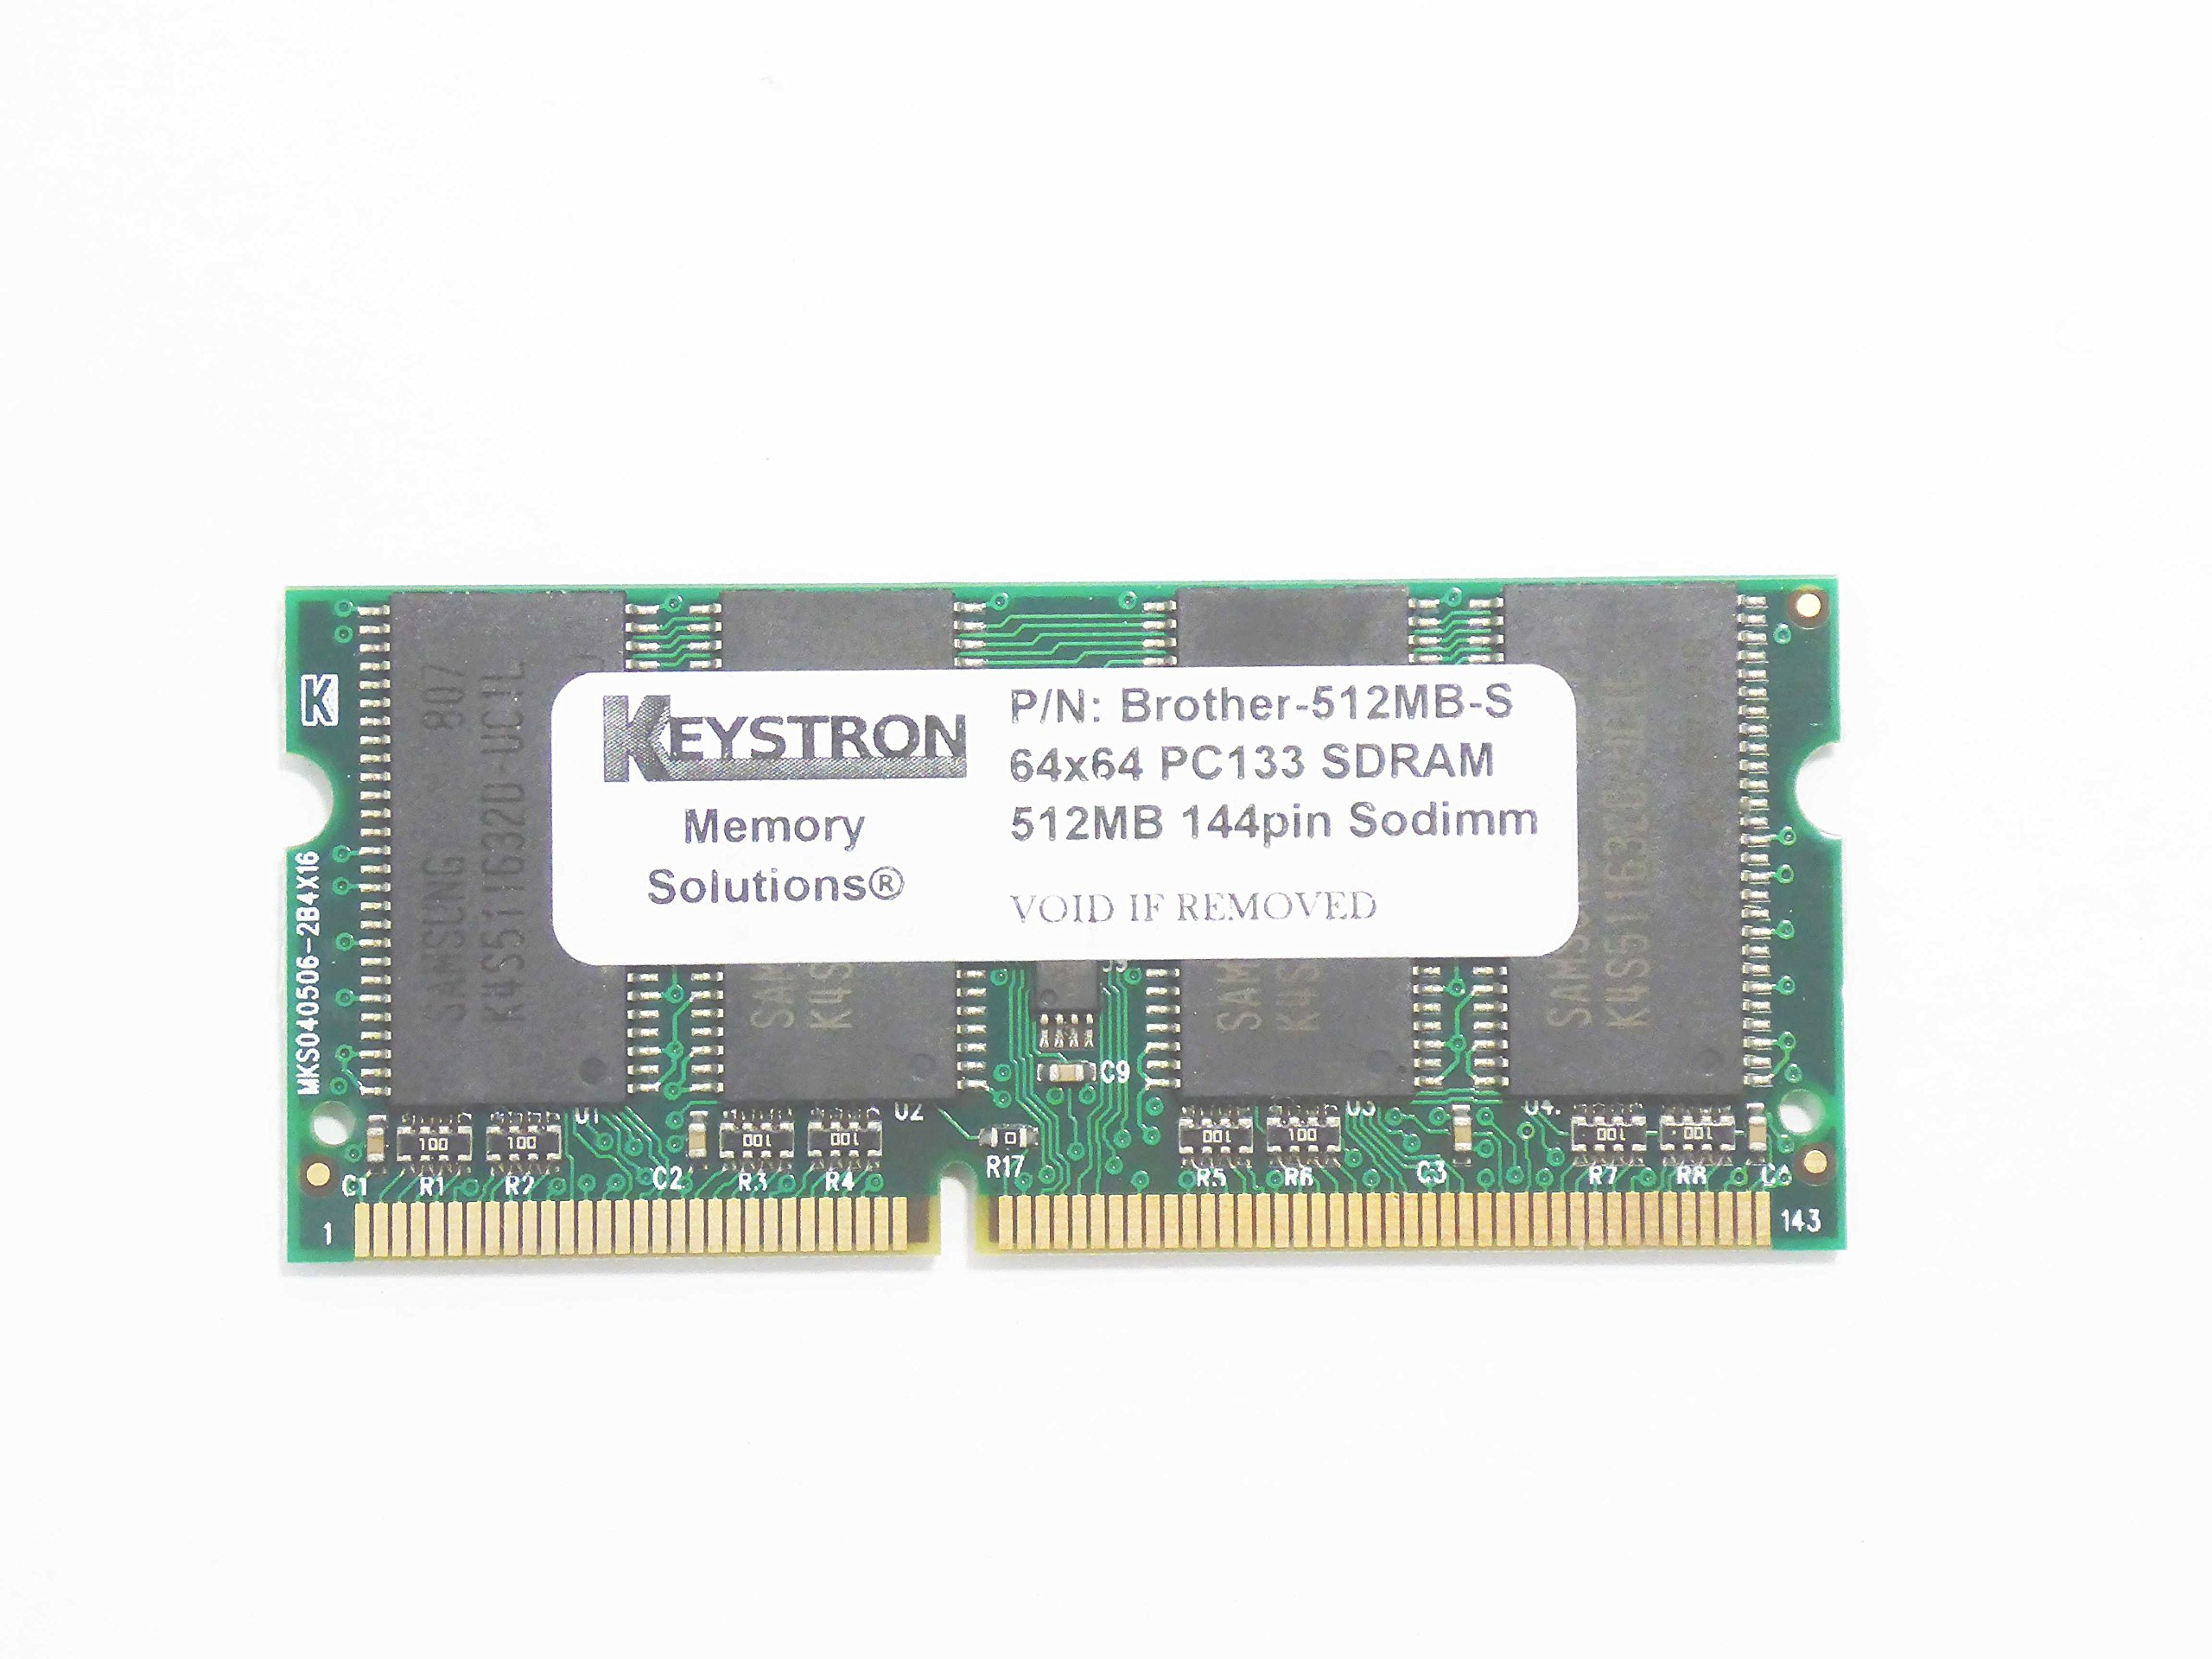 Harga Sdram Laptop Ddr2 512mb Terbaru 2018 Deepcool N300 200mm Big Airflow Fan Notebook Cooler Original Resmi Cheap Pc133 Sodimm Find Deals On Line At Alibabacom Get Quotations 144pin